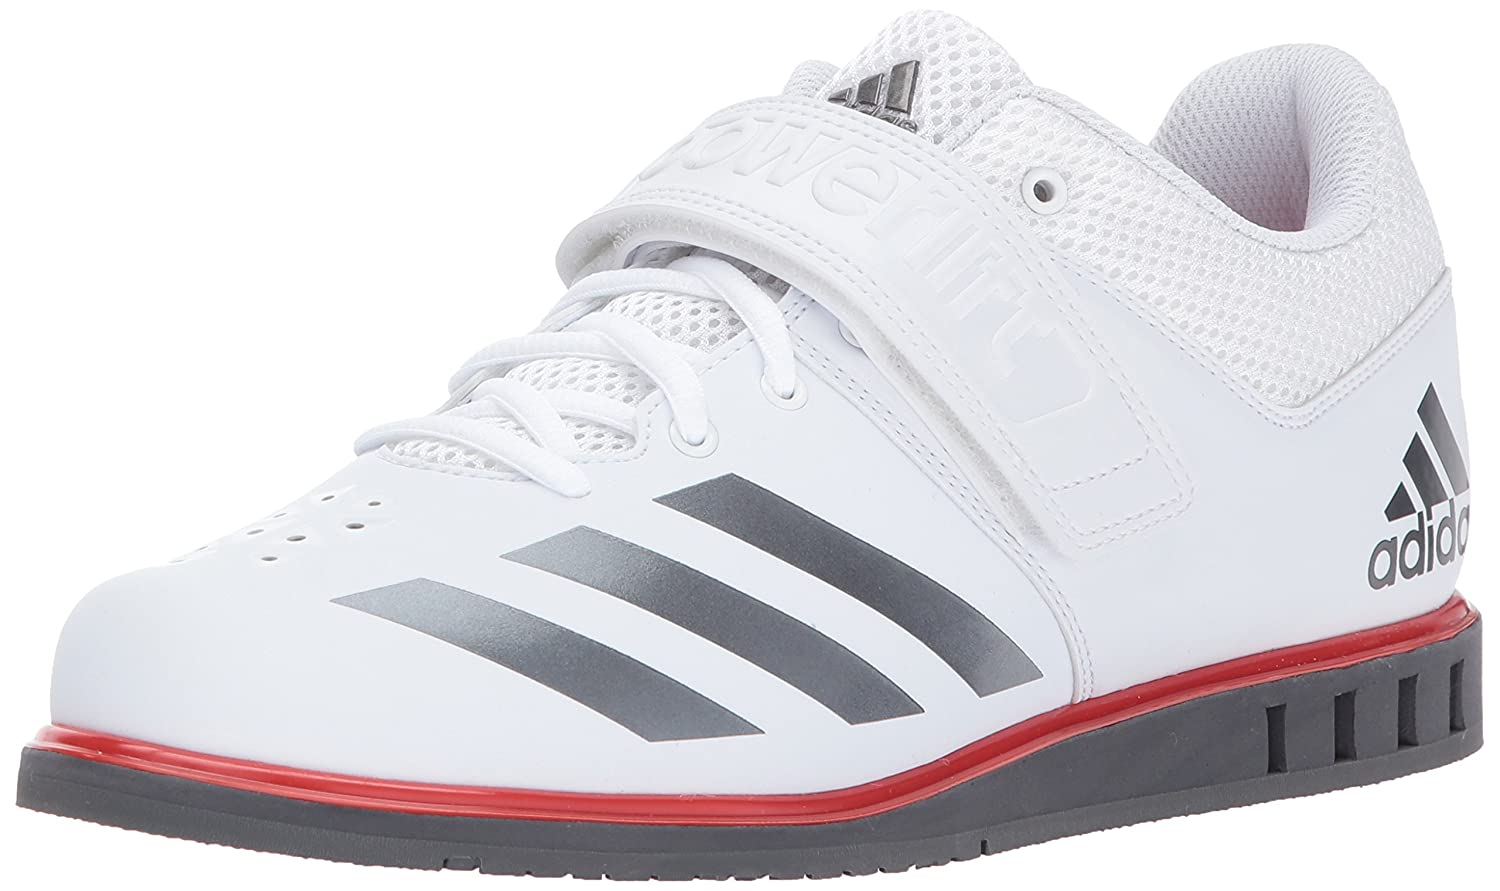 White Night Metallic Grey Five adidas Powerlift.3.1 shoes Men's Weightlifting